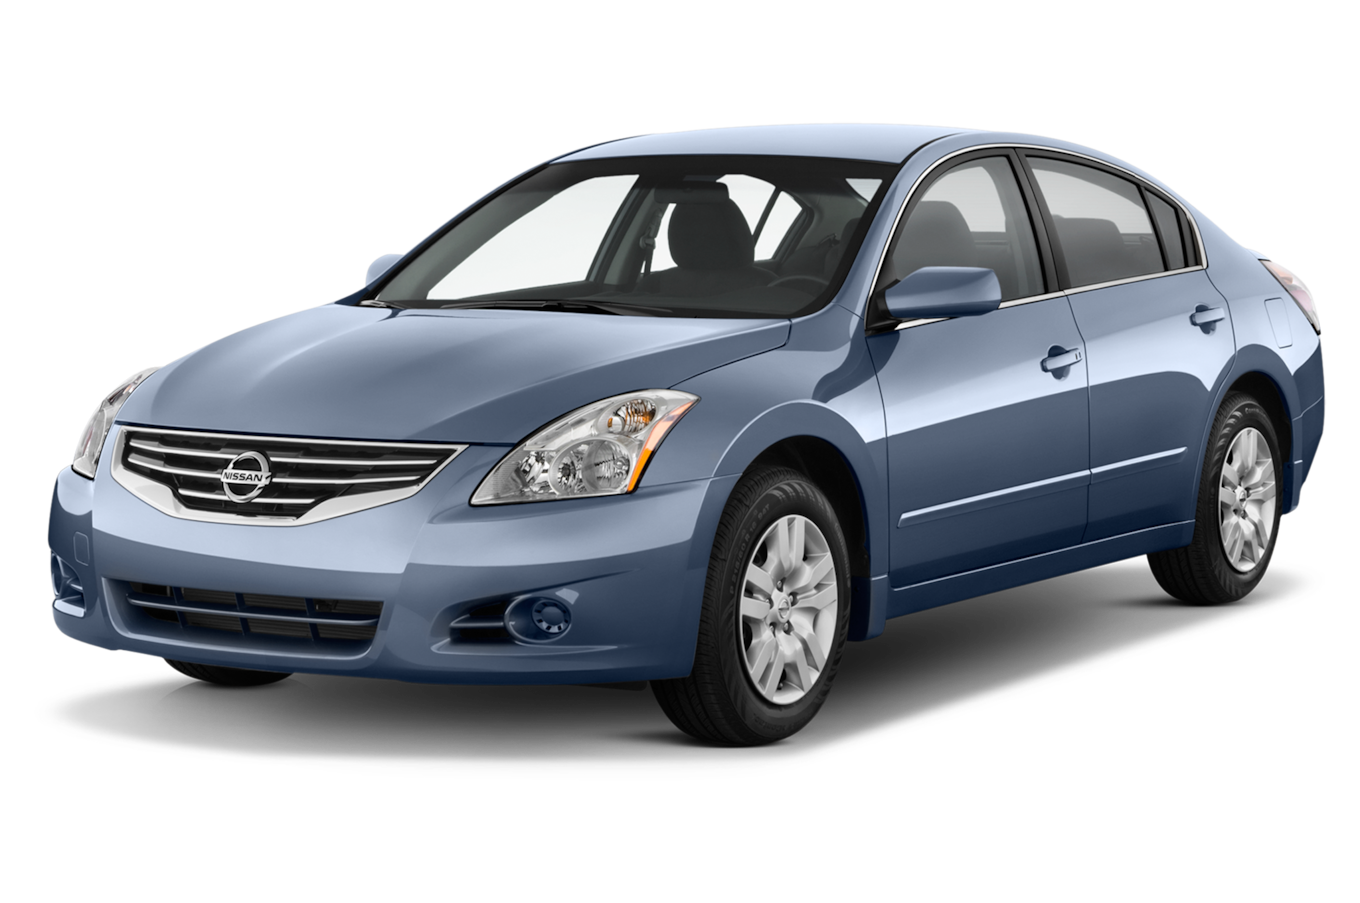 69 New 2012 Nissan Altima Images for 2012 Nissan Altima